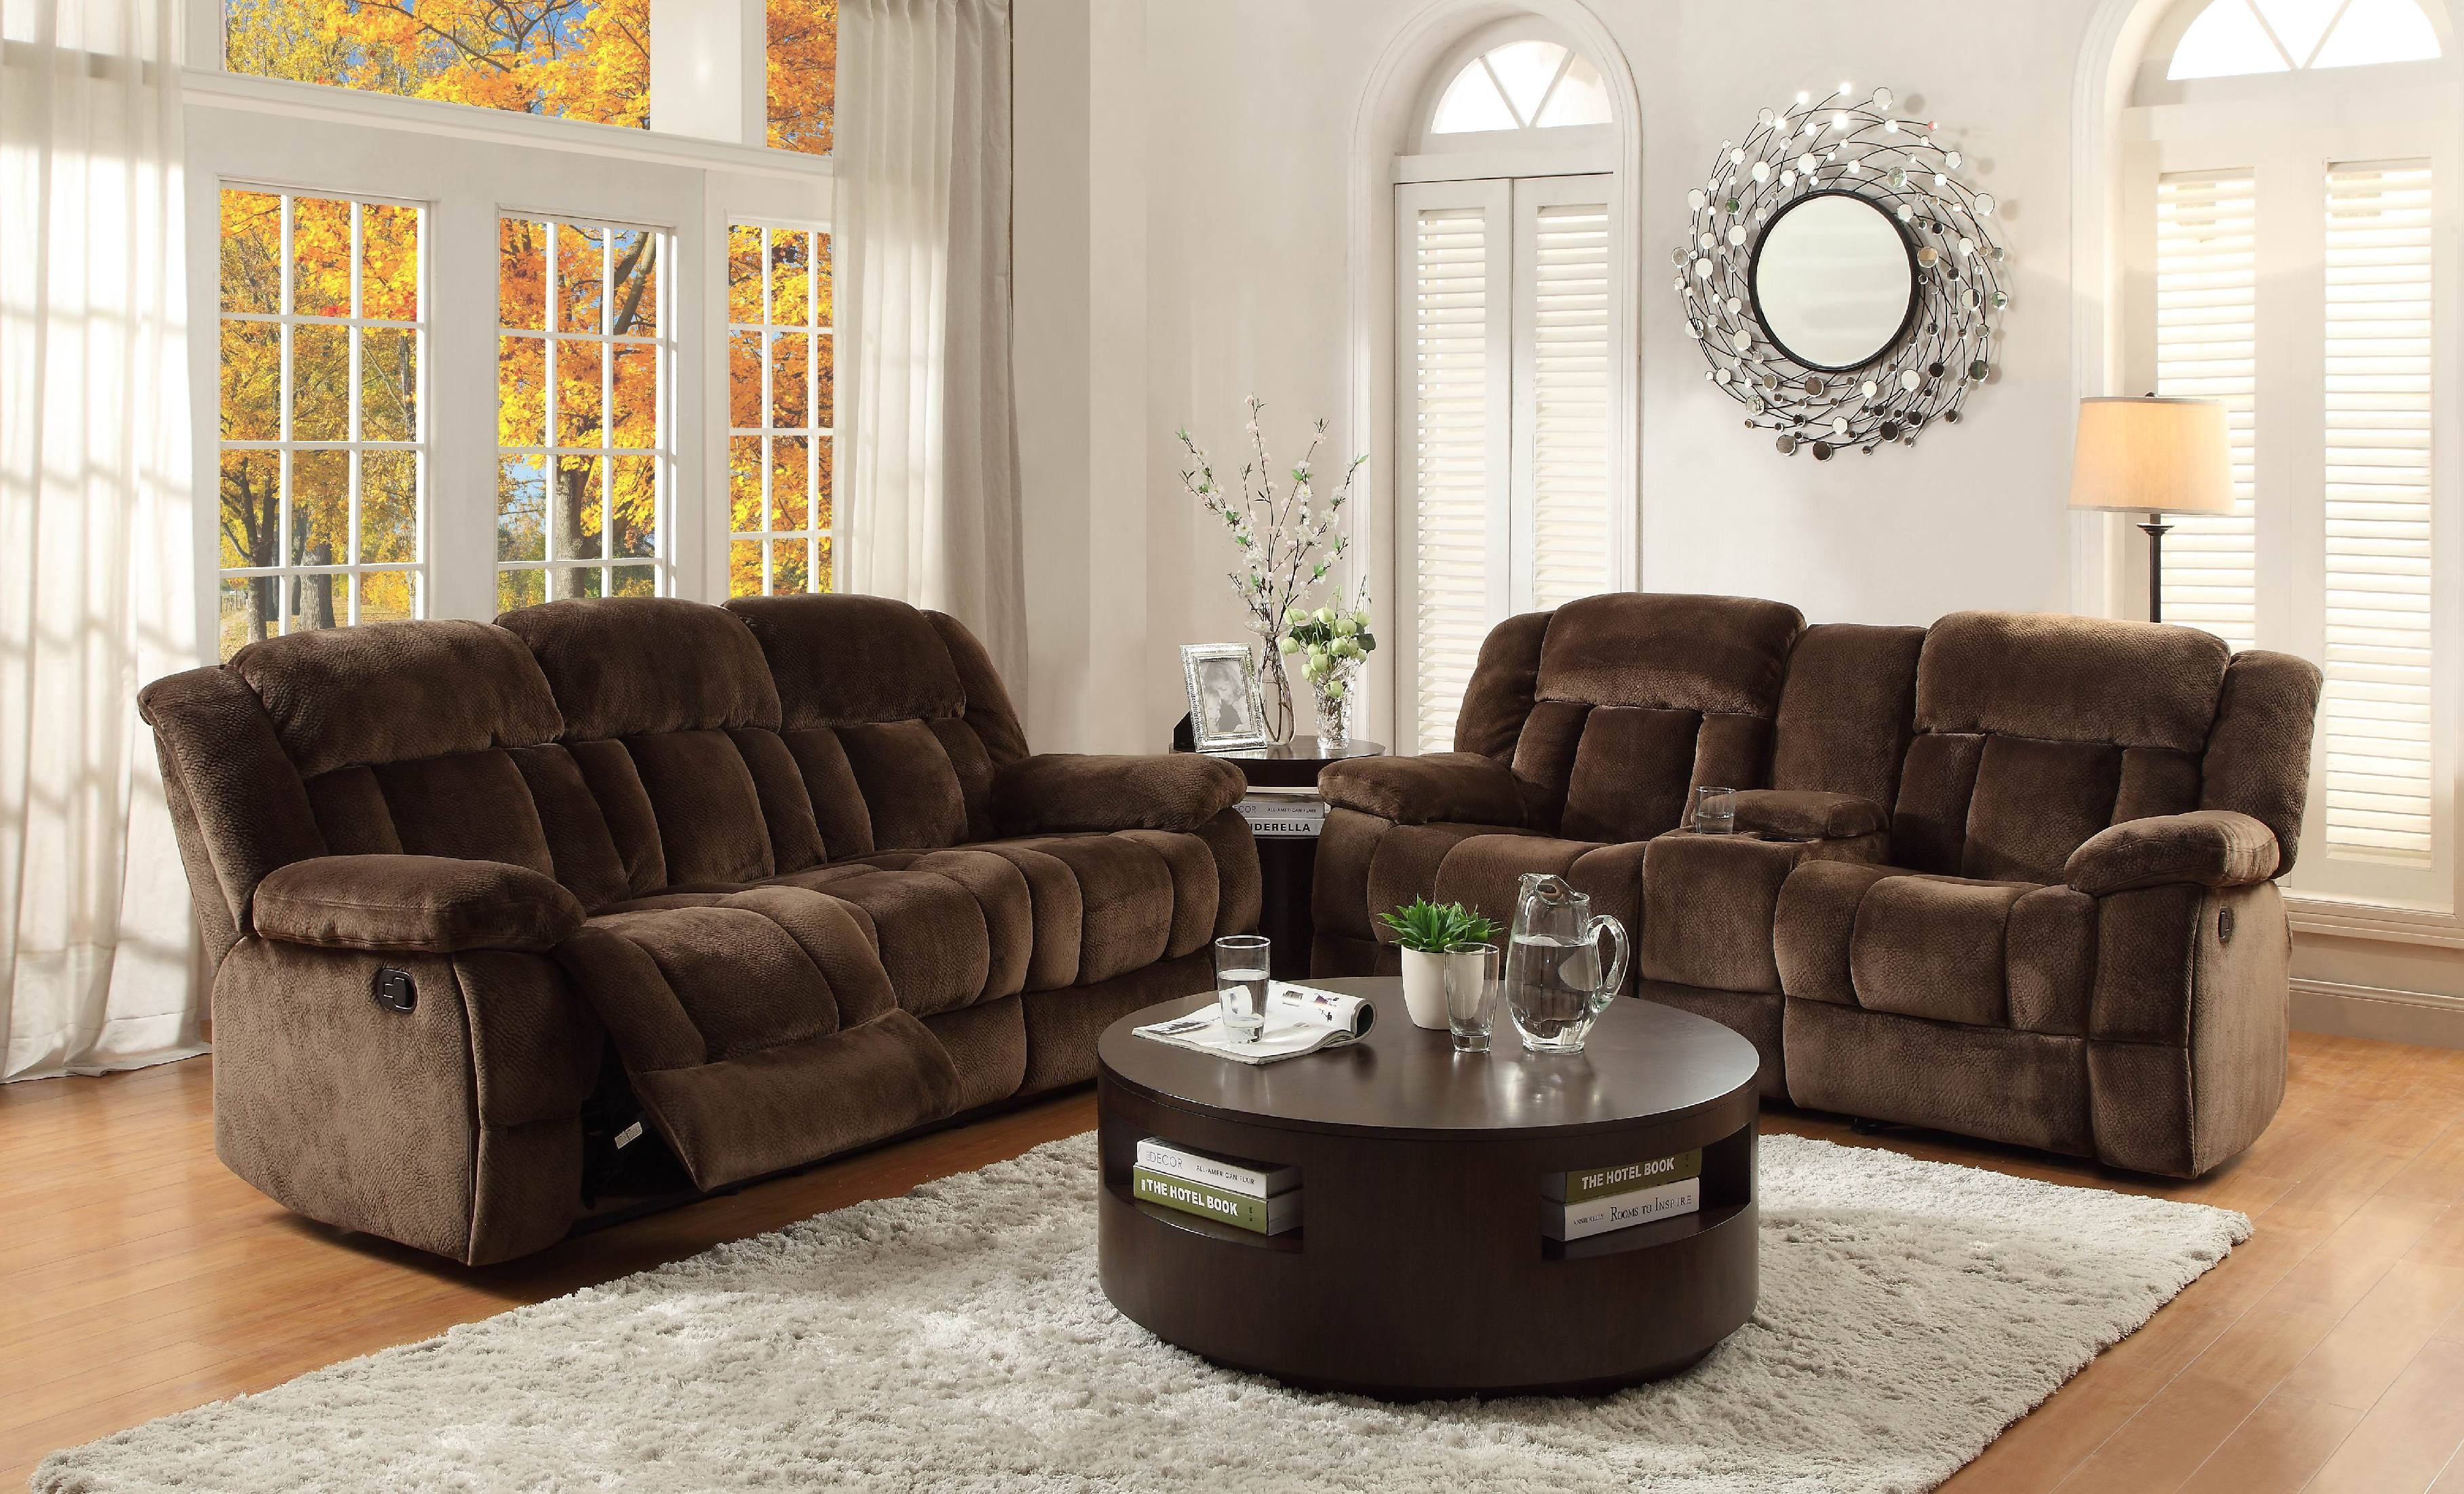 Homelegance Double Recliner Glider Loveseat With Center Console 9636-2  sc 1 st  D Noblin Furniture Store & Homelegance Living Room Double Recliner Glider Loveseat With ... islam-shia.org